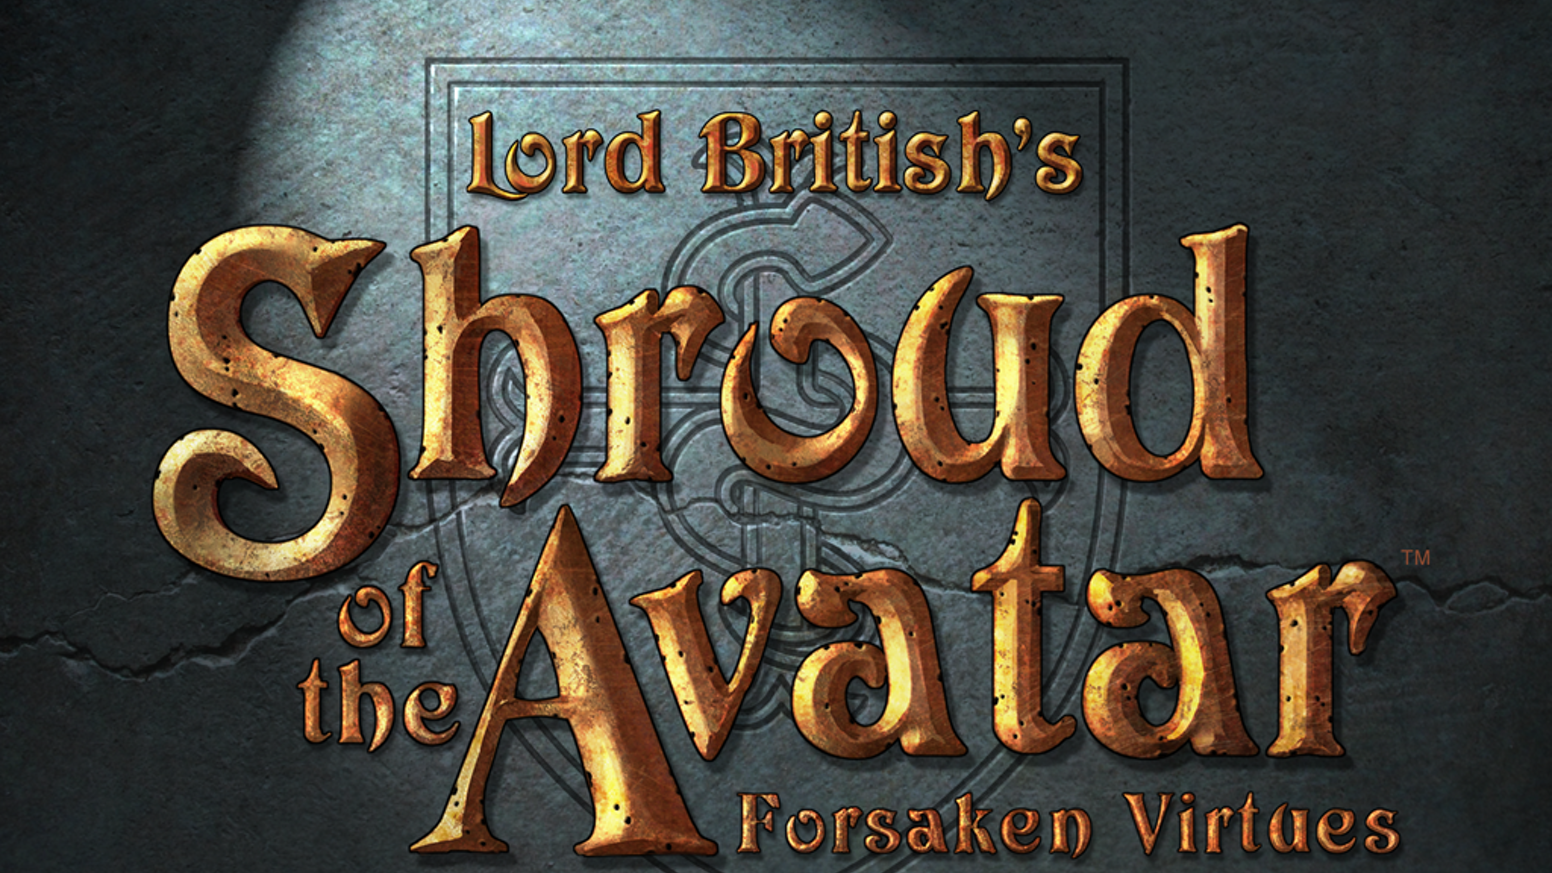 Shroud of the Avatar: Forsaken Virtues by Portalarium, Inc